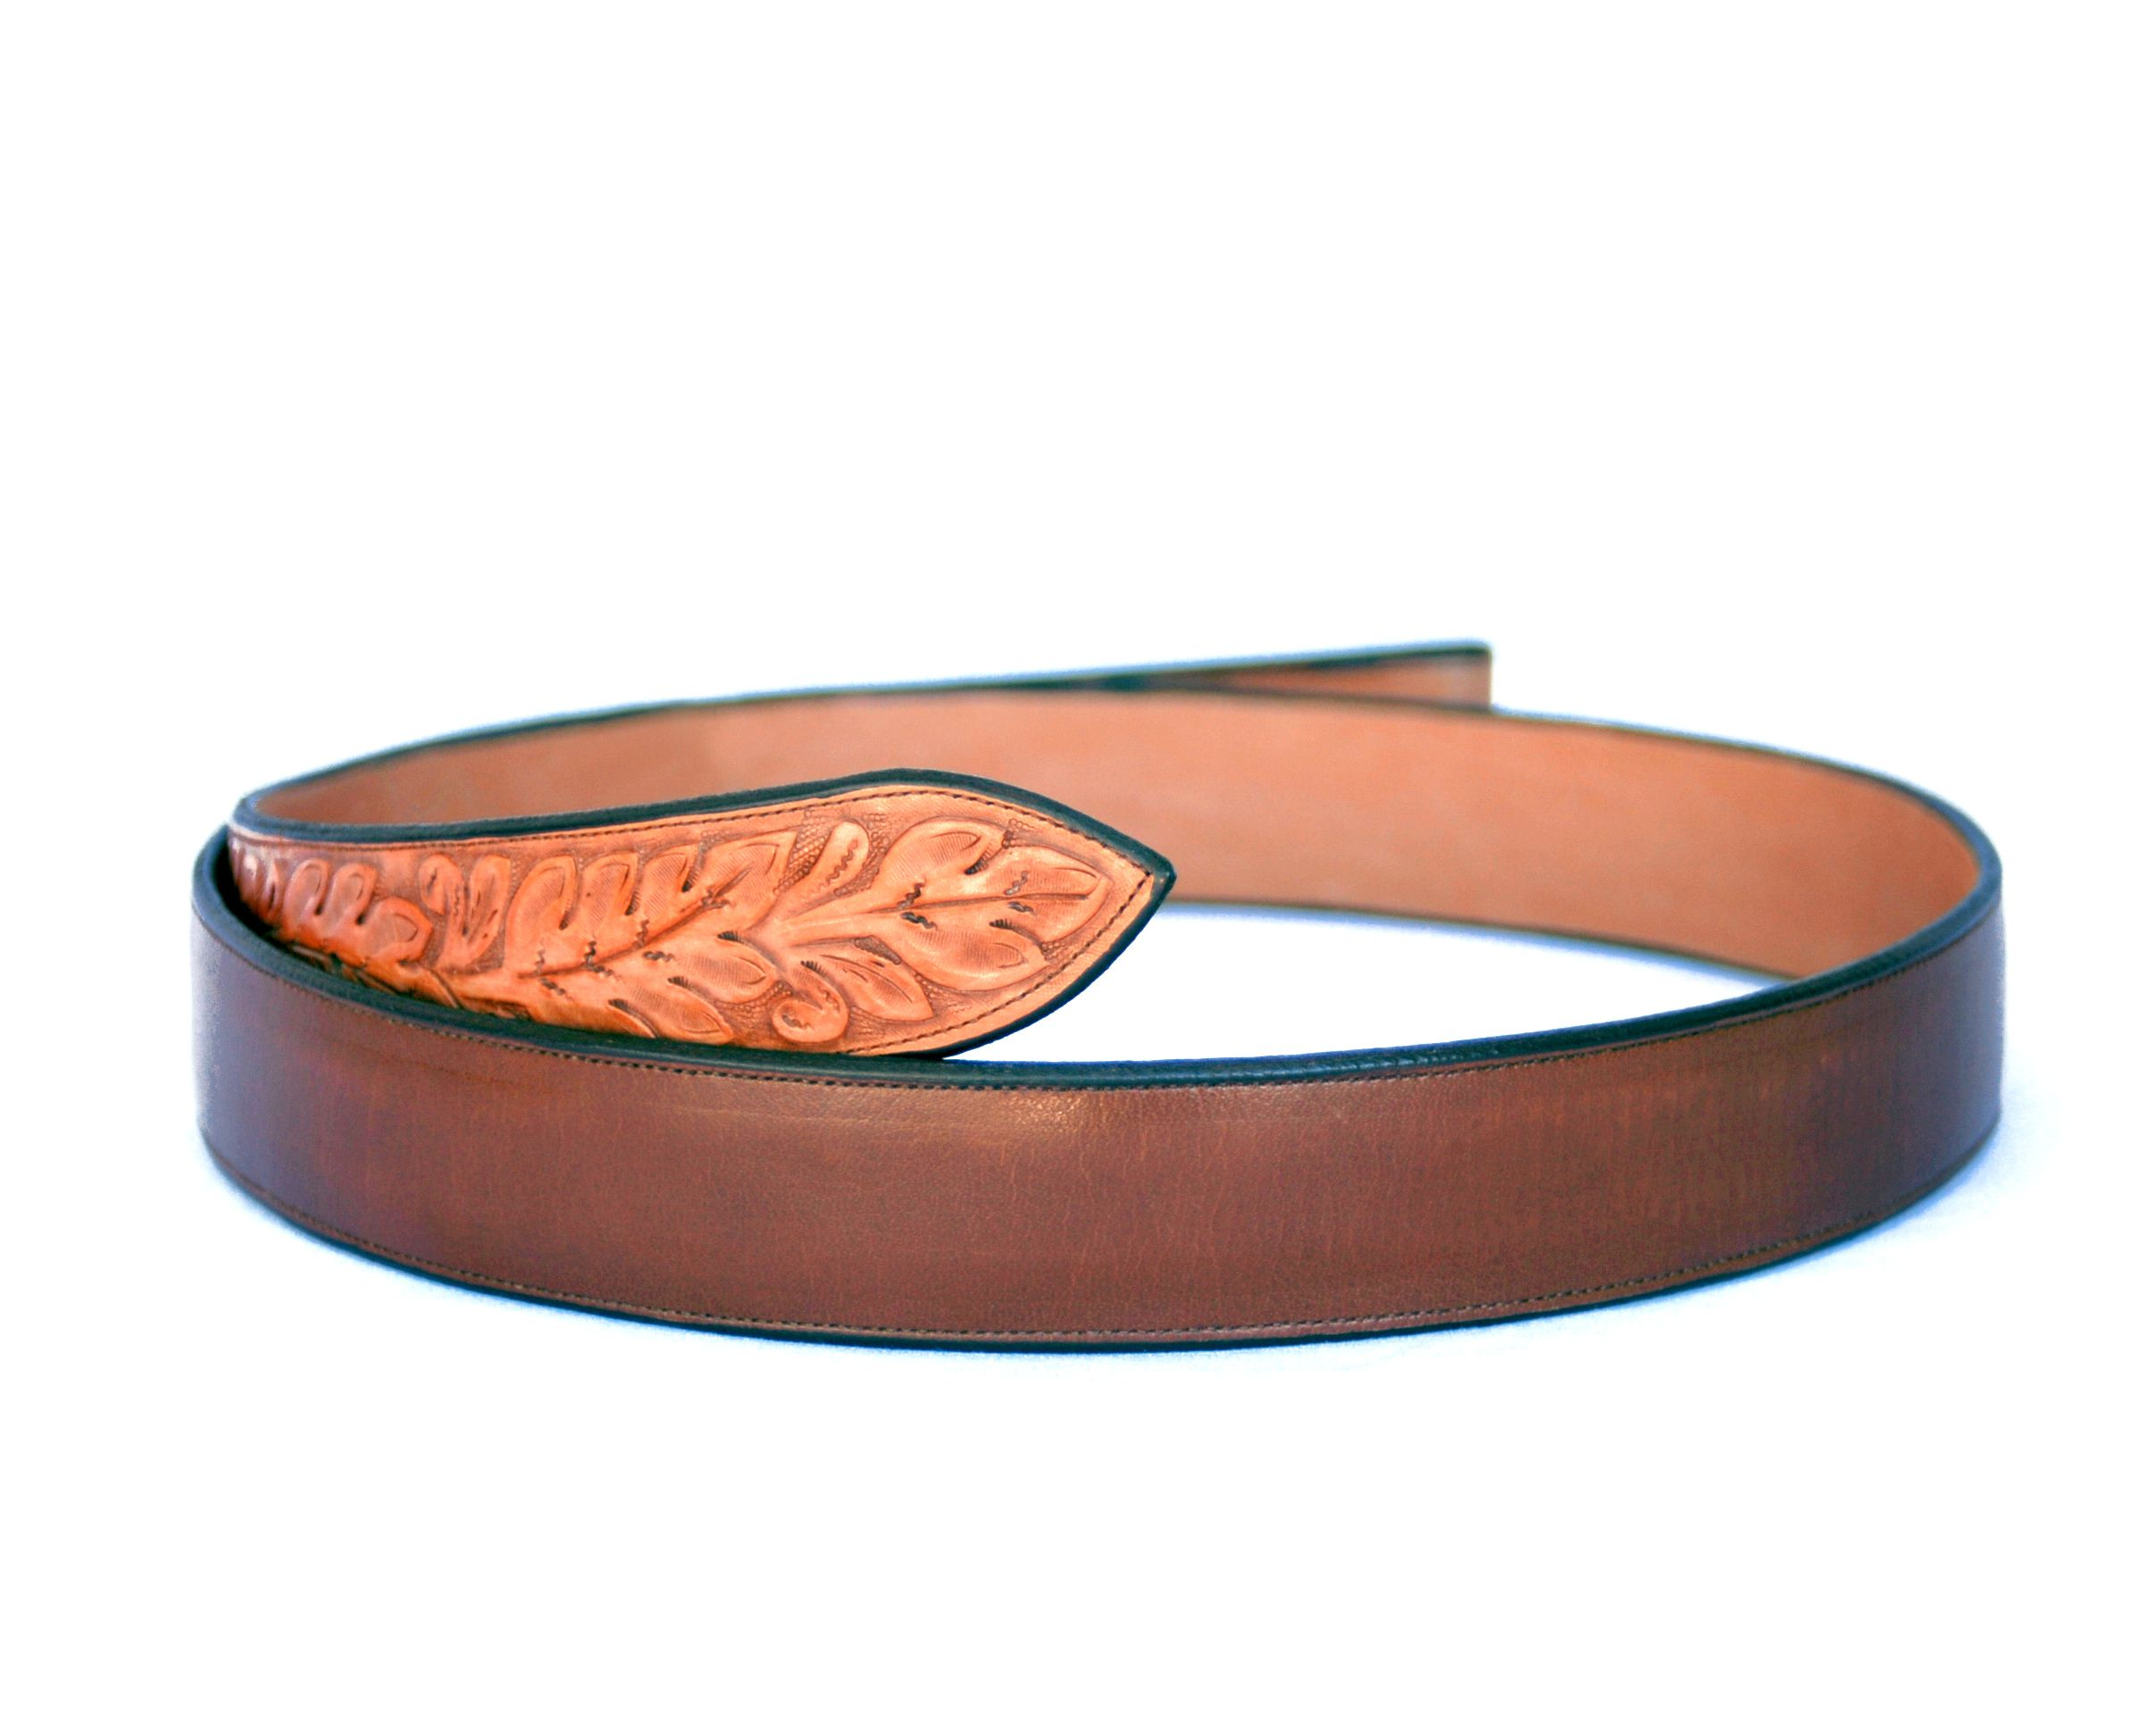 Handmade Western Belt Brown Leather with Tooled Ends at luckystargallery.com ~ $165